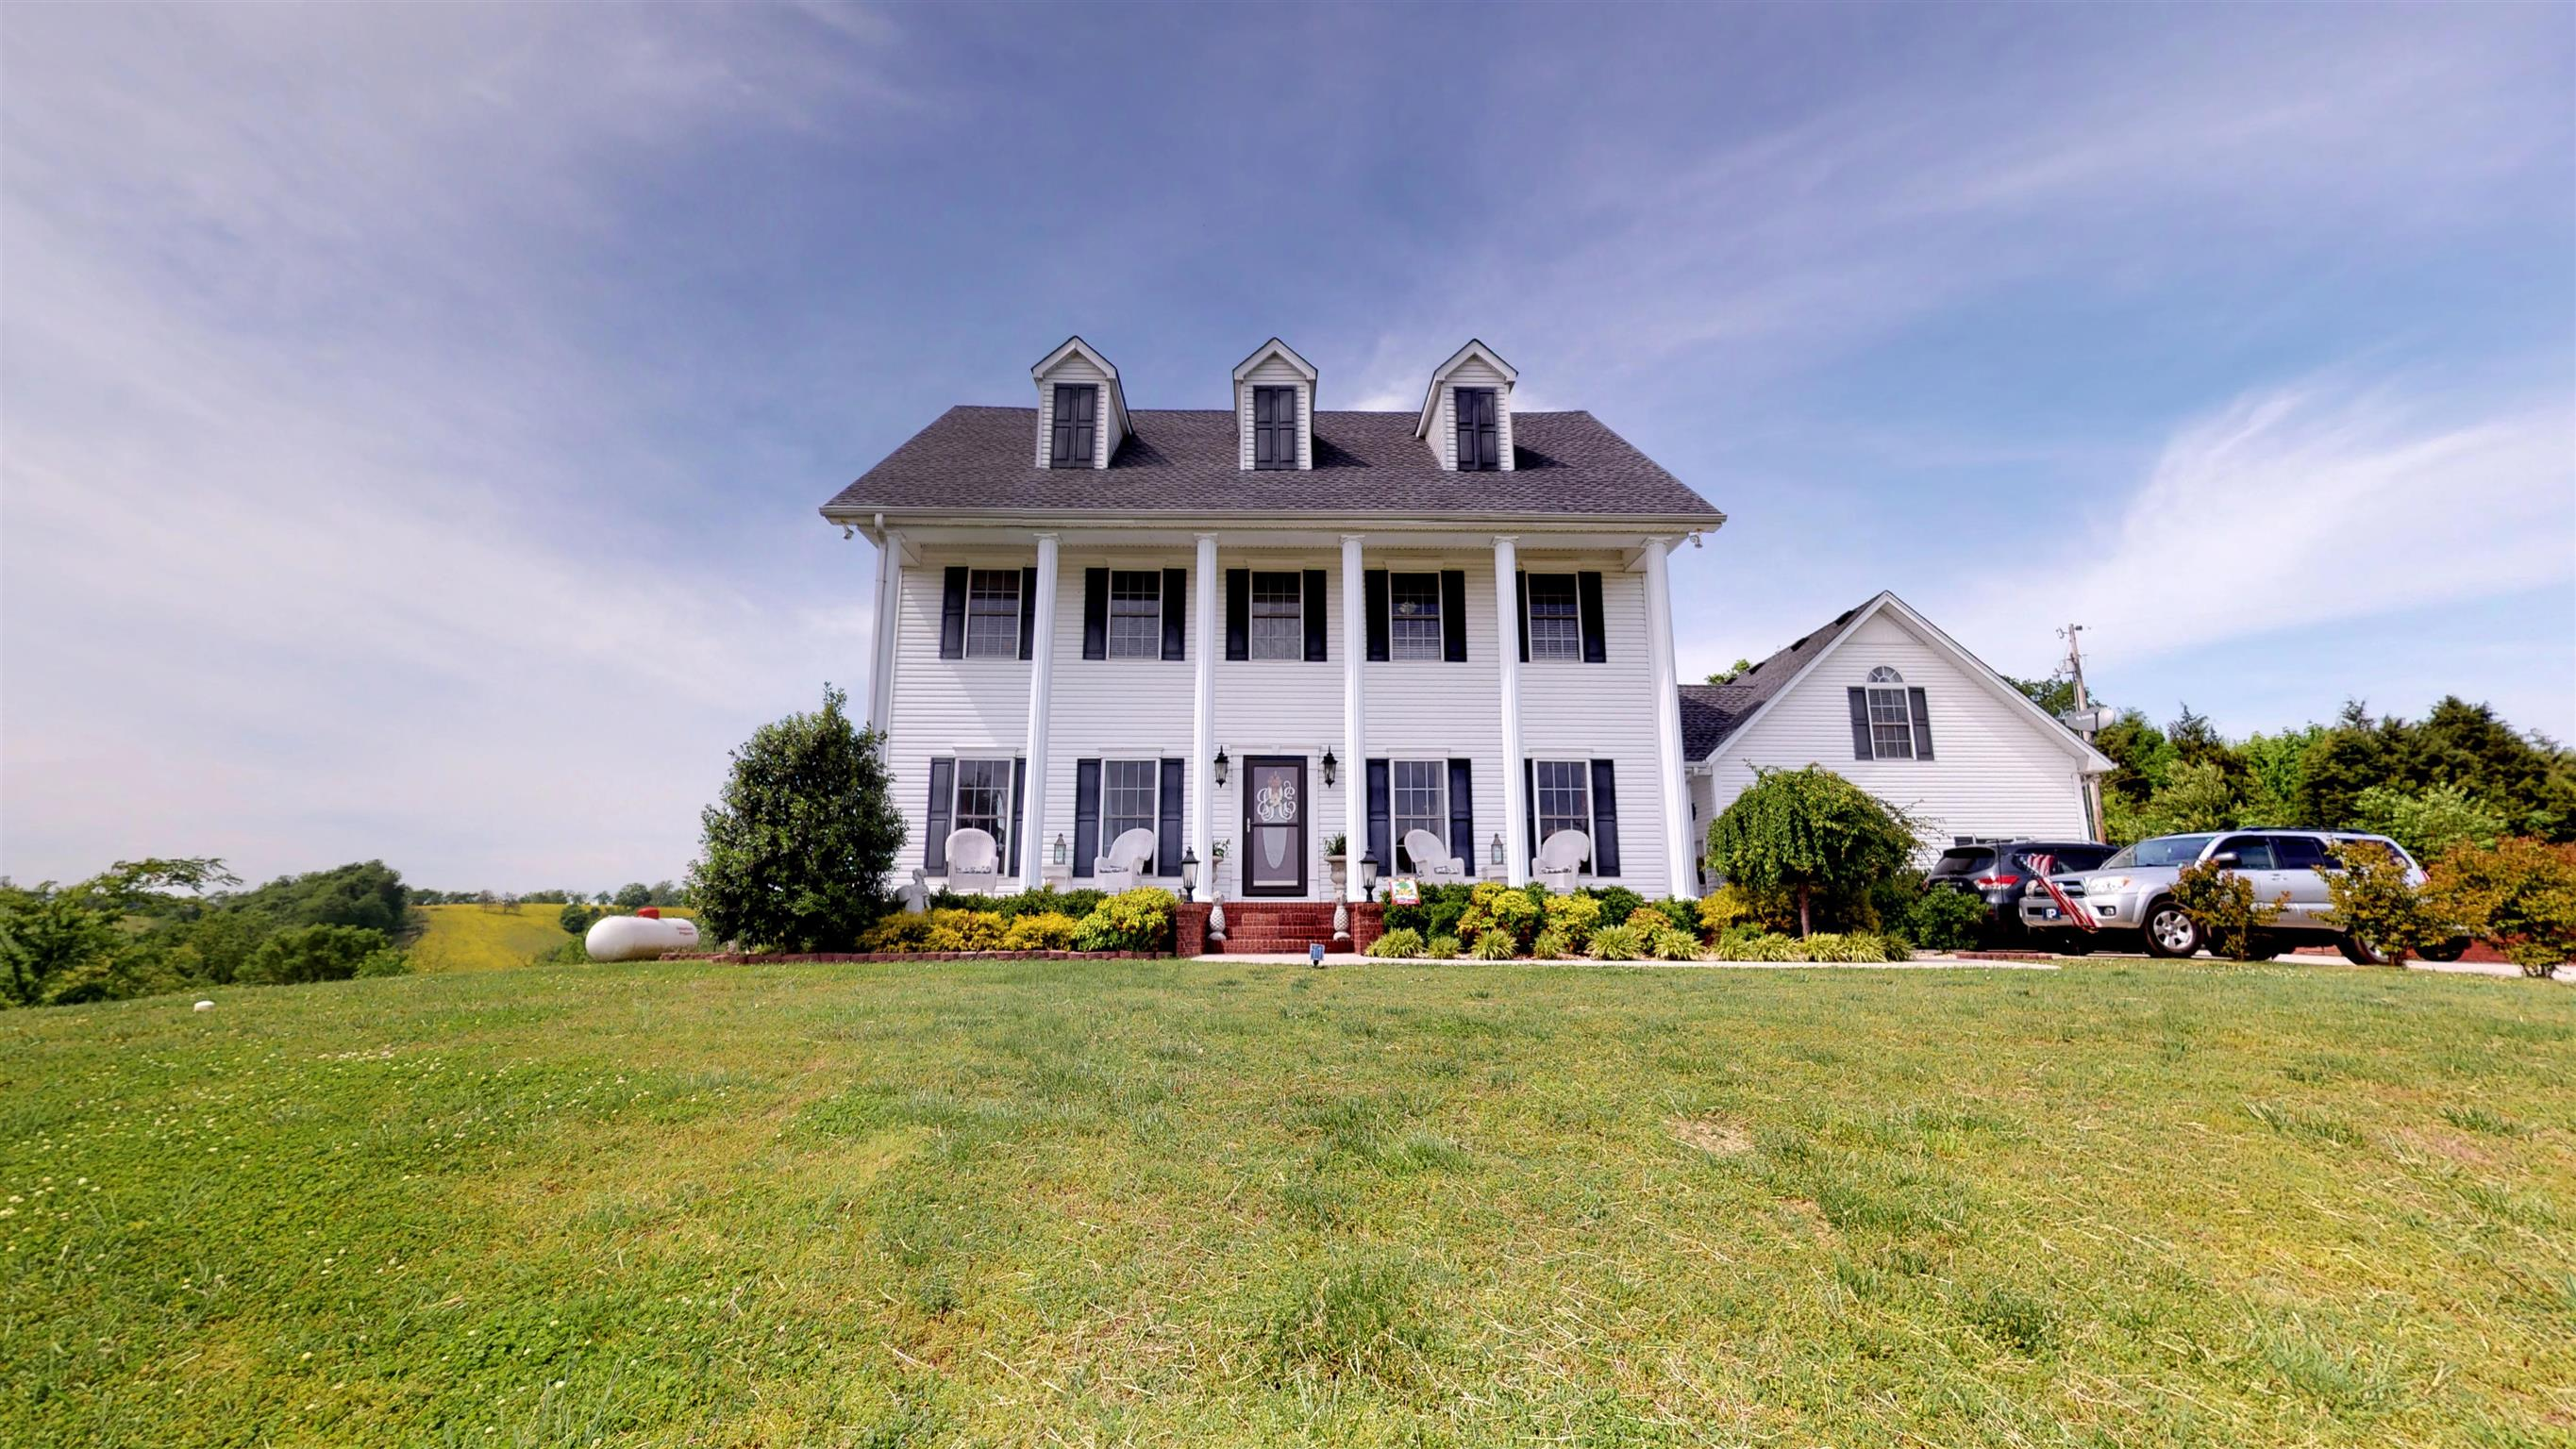 445 Crest View Dr, Lynchburg, TN 37352 - Lynchburg, TN real estate listing